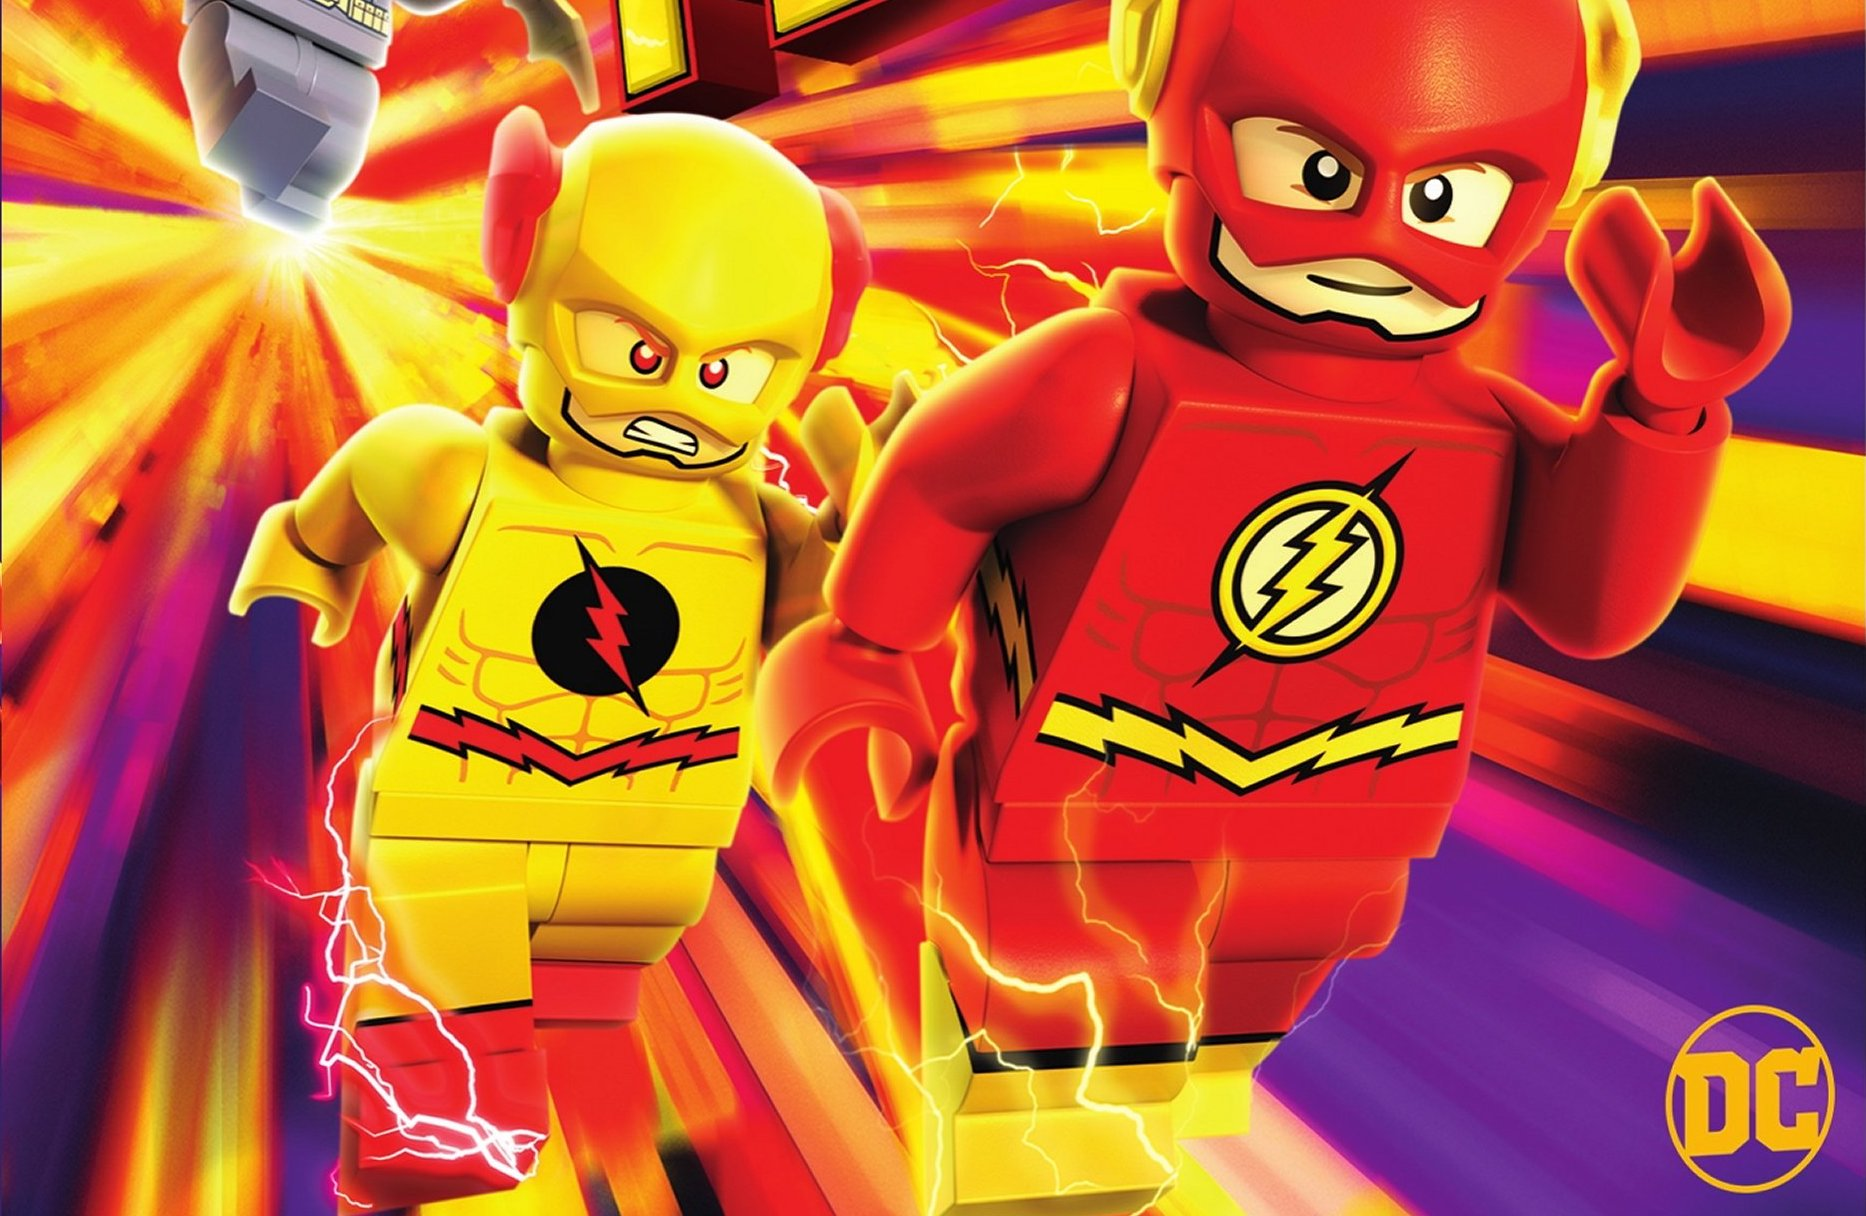 Awesome The Flash Gets His Own Lego DC Super Heroes Movie